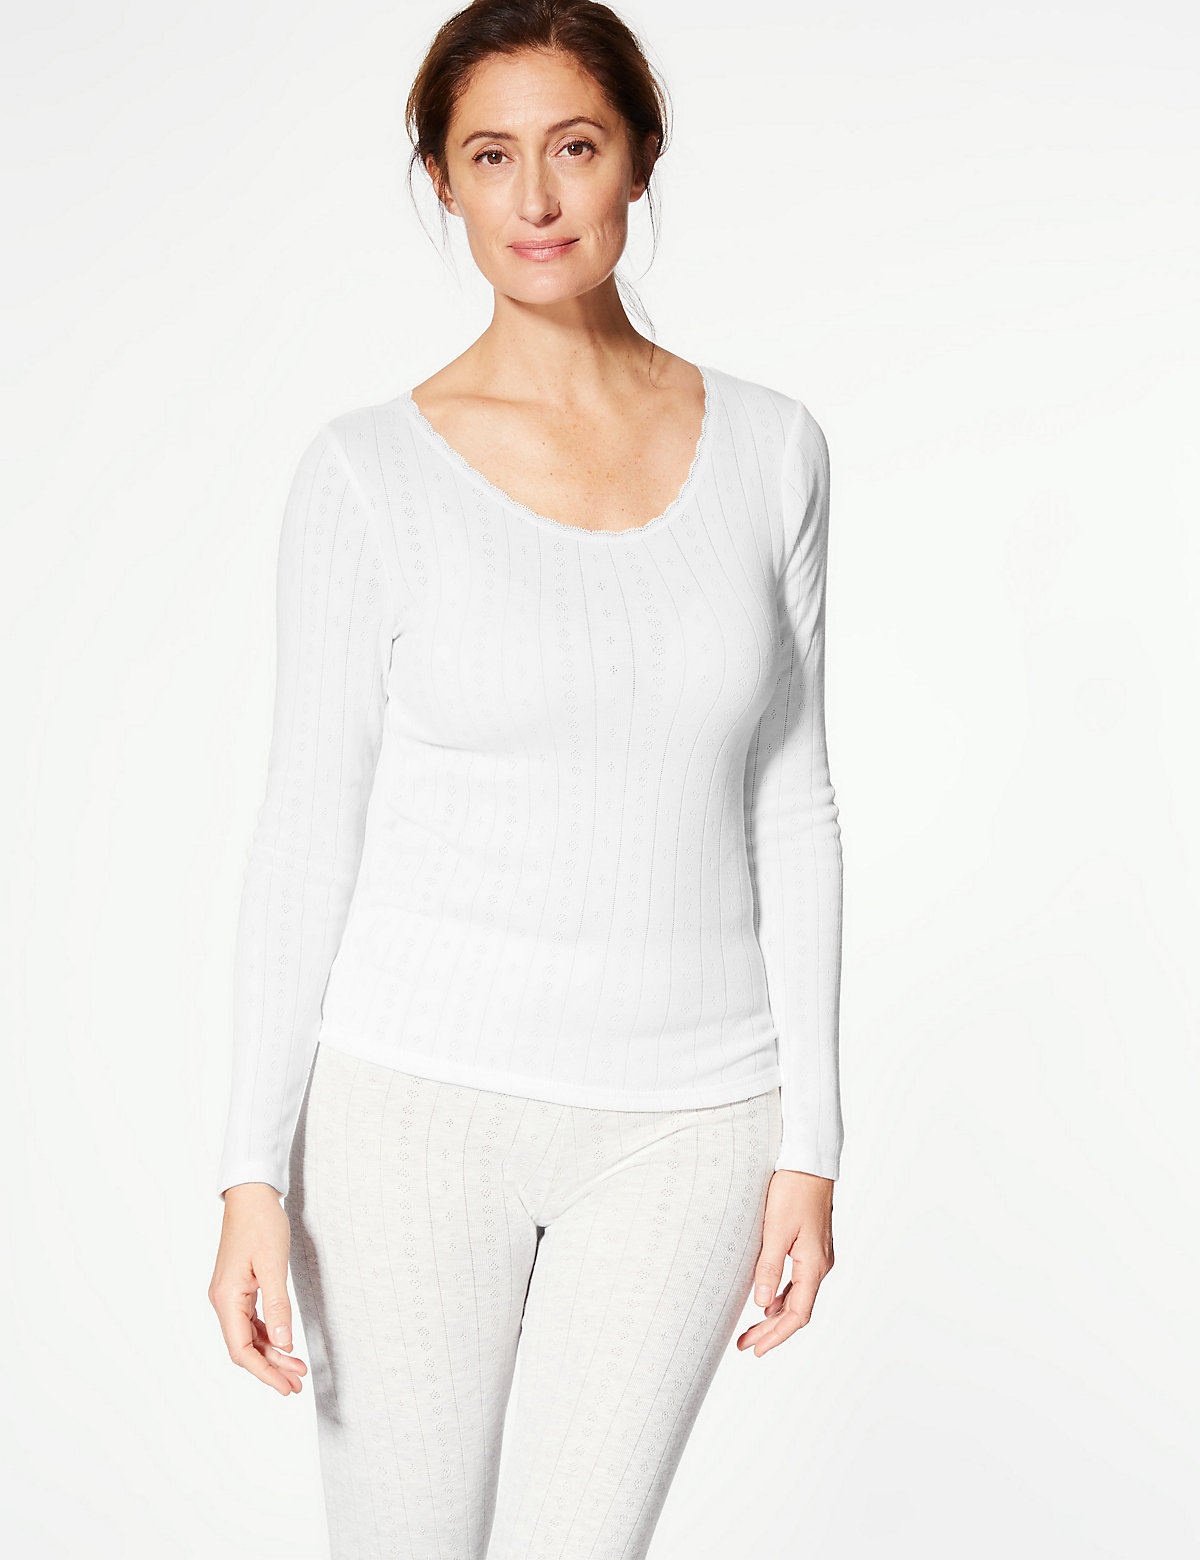 MS Collection 2 Pack Thermal Long Sleeve Pointelle Tops Marks and Spencer P22320814